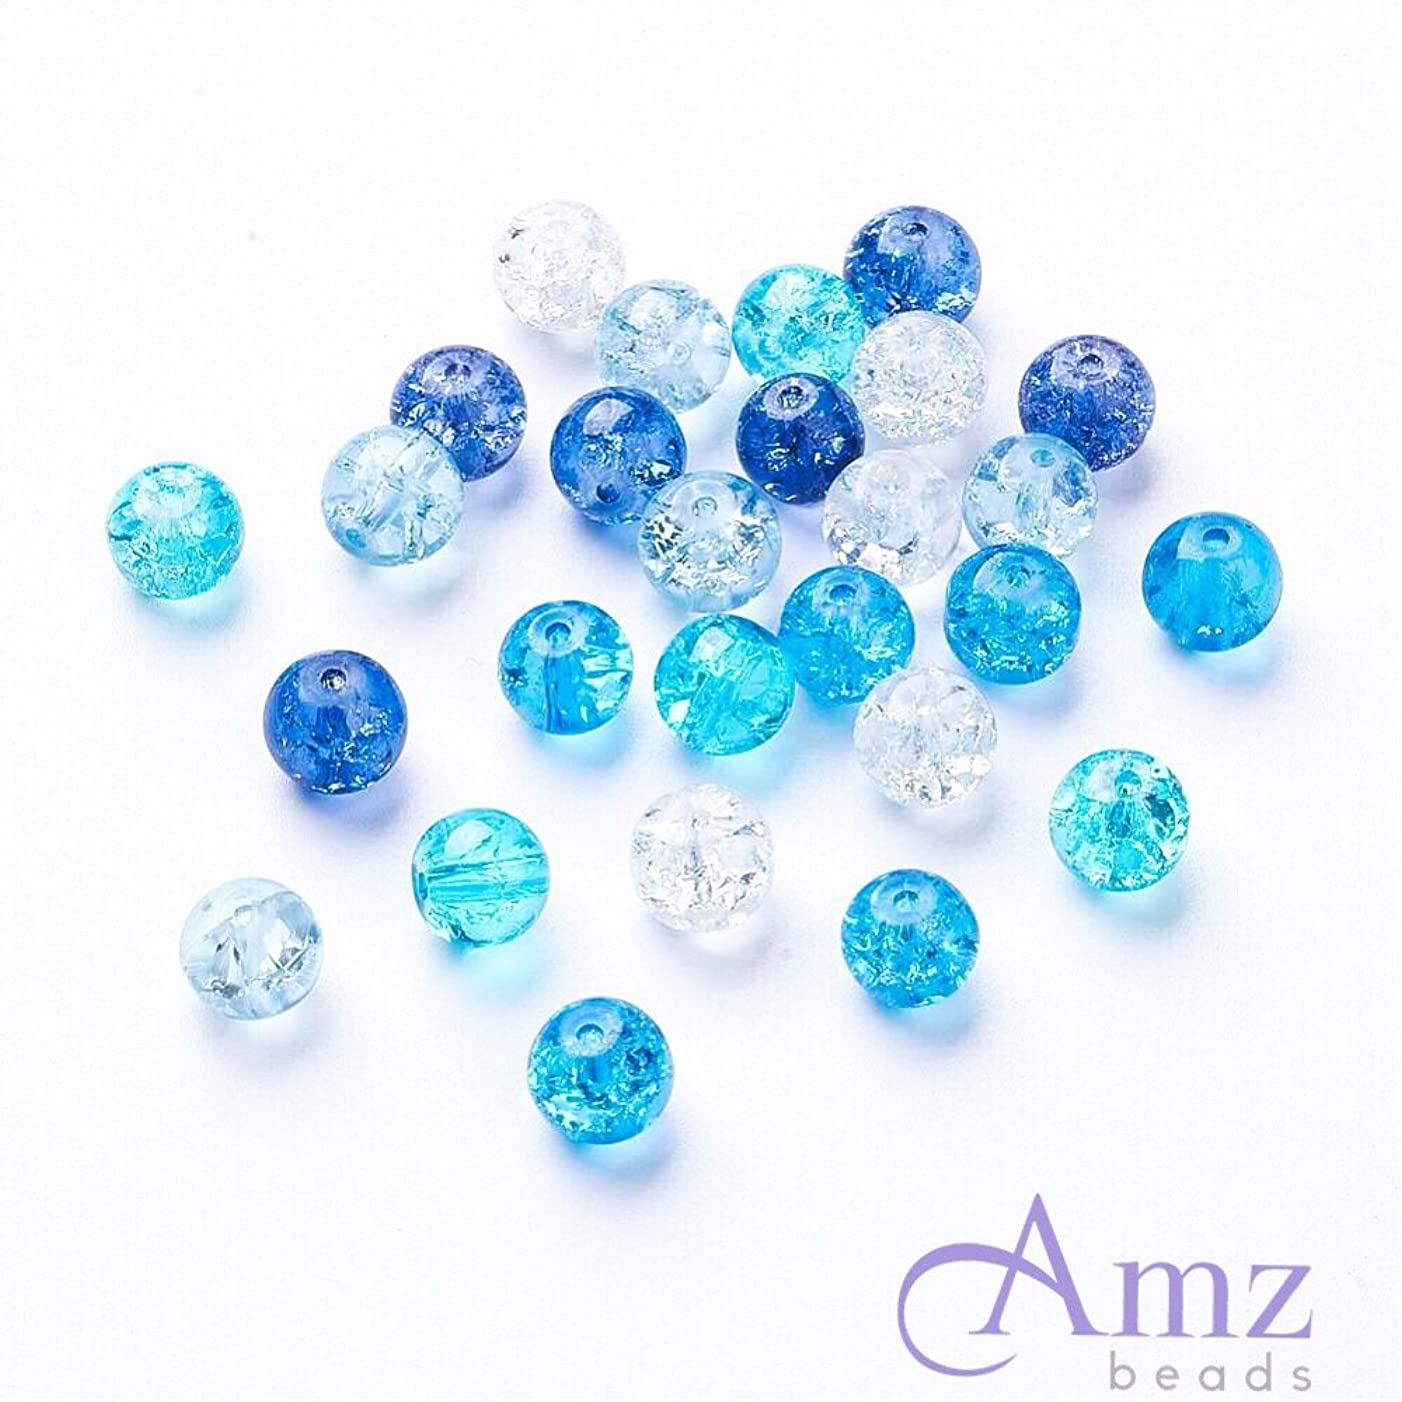 AMZ Beads - 4mm Mixed Assorted Colors Crackle Czech Glass Beads - Pack of 400 beads (Ocean Mix)